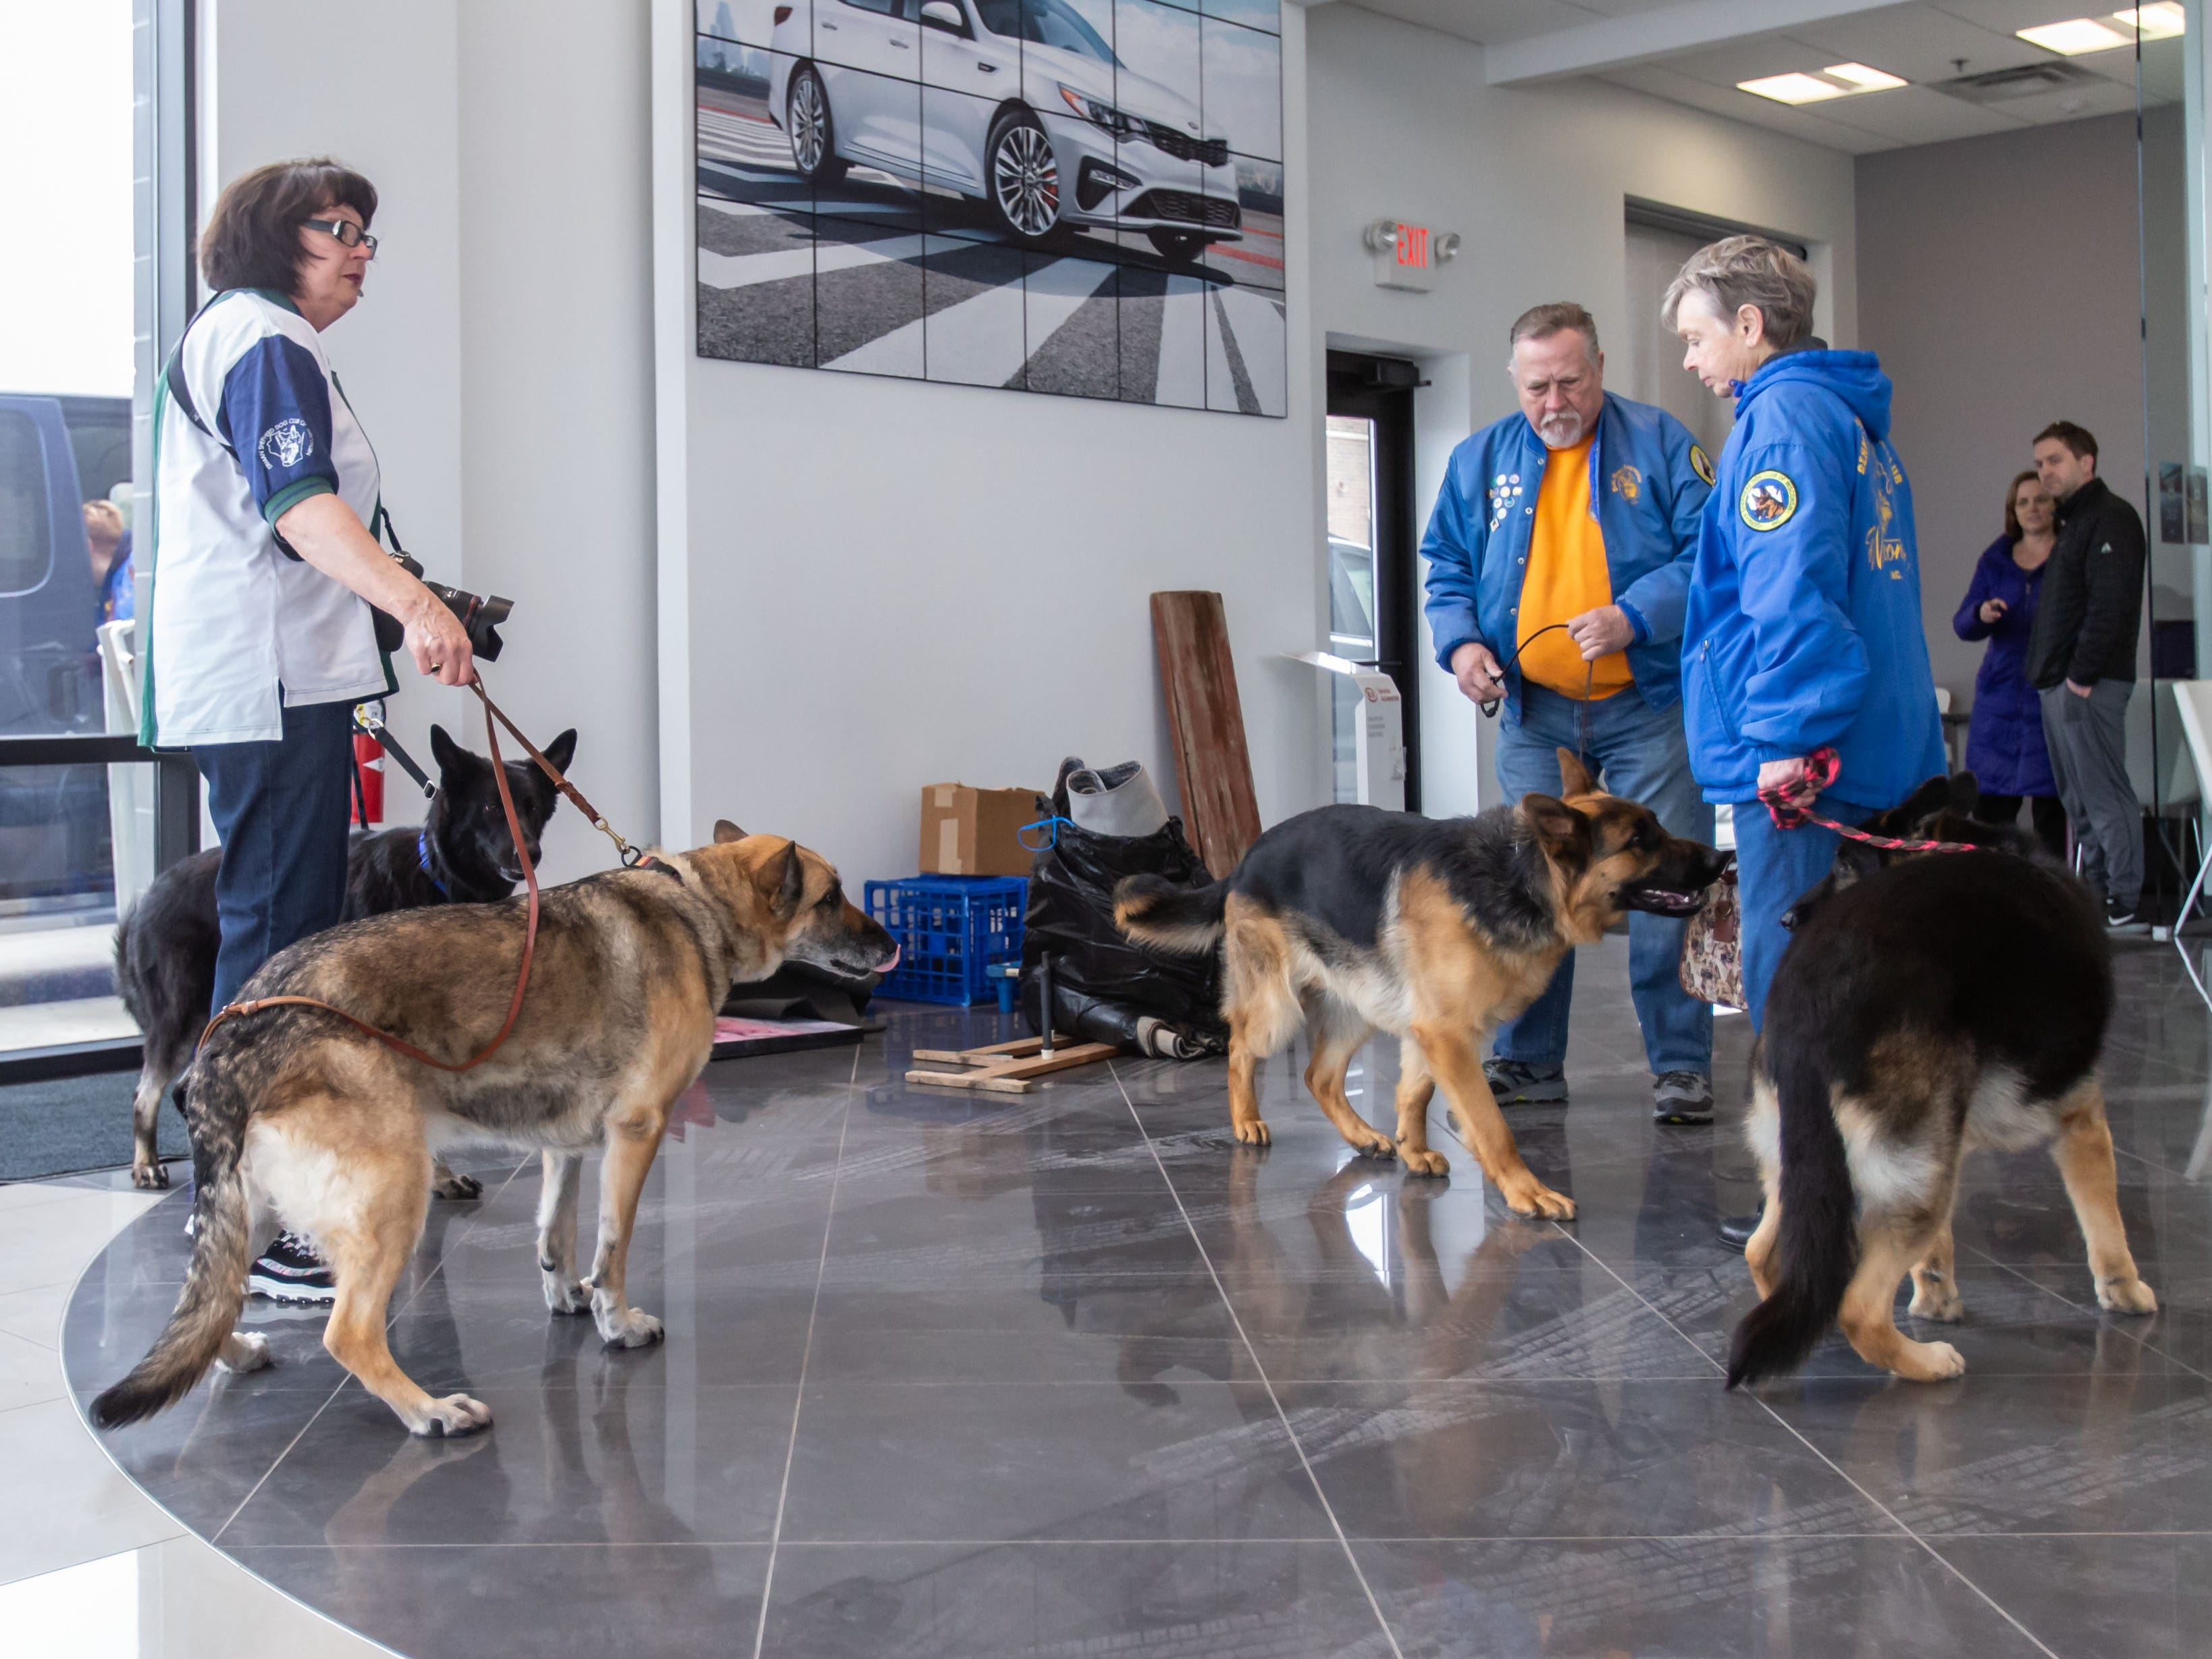 Members of the German Shepard Dogs Club of Wisconsin (GSDCW) attend the Adopt a Pet program at Russ Darrow Kia of Wauwatosa on Saturday, March 9, 2019. The event, held in partnership with the Humane Animal Welfare Society (HAWS) in Waukesha and the GSDCW, offered attendees the opportunity to meet and adopt dogs, cats, rabbits, and other types of animals.